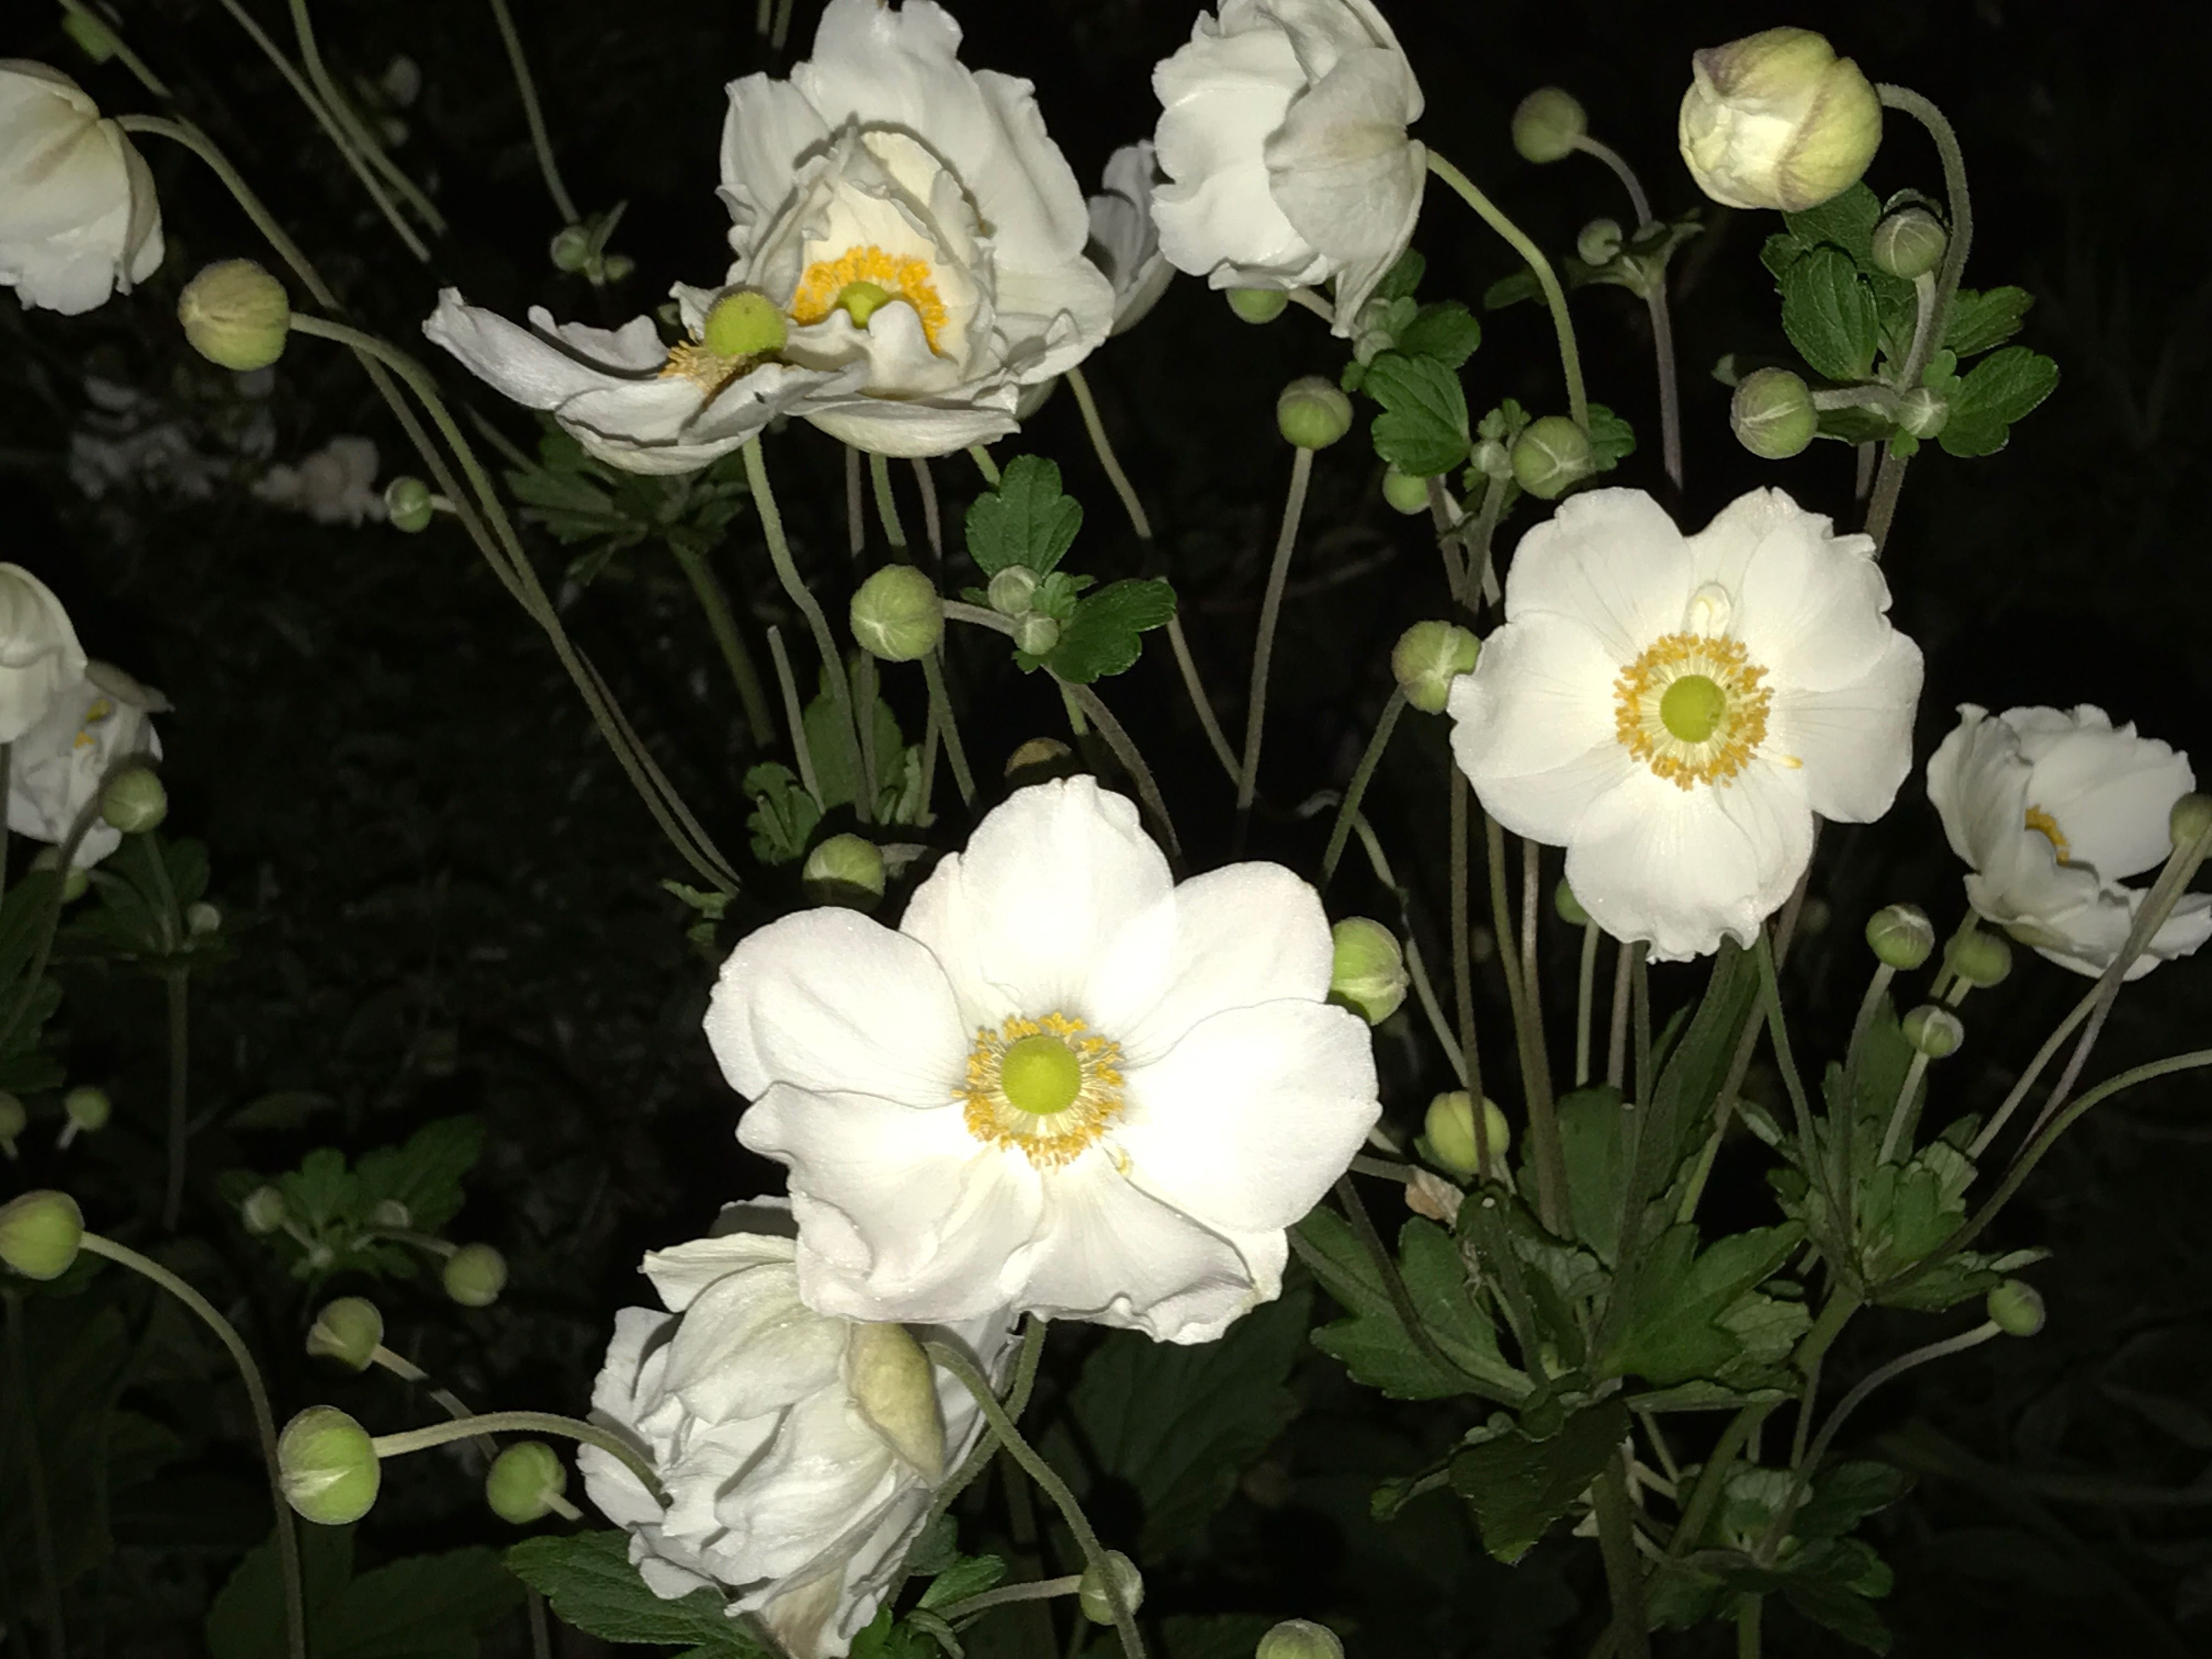 Fall Flower White Anemone Japonica St Honore At Night